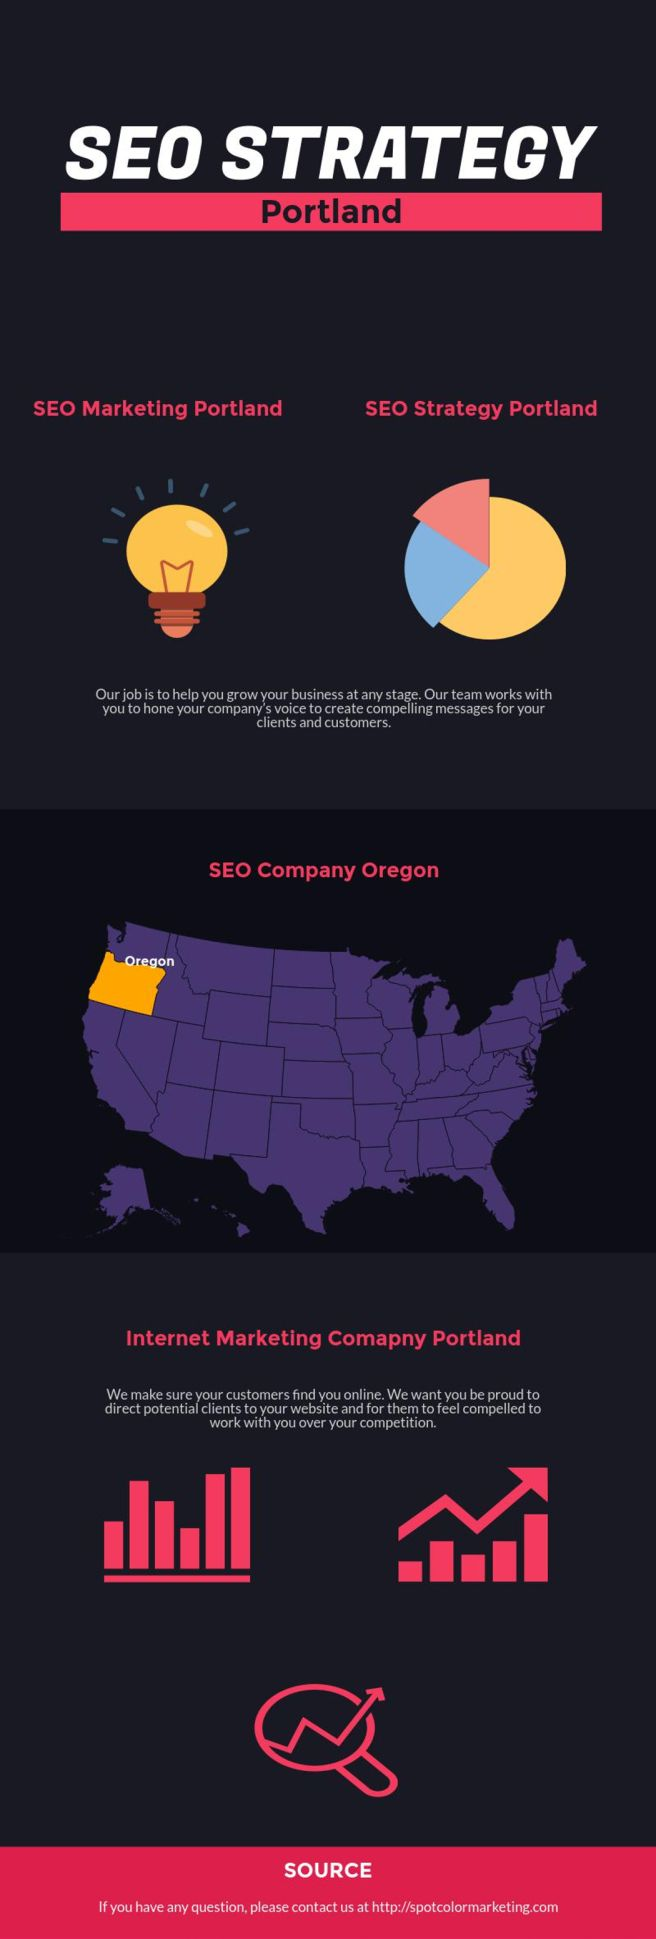 Best SEO Strategy in Portland